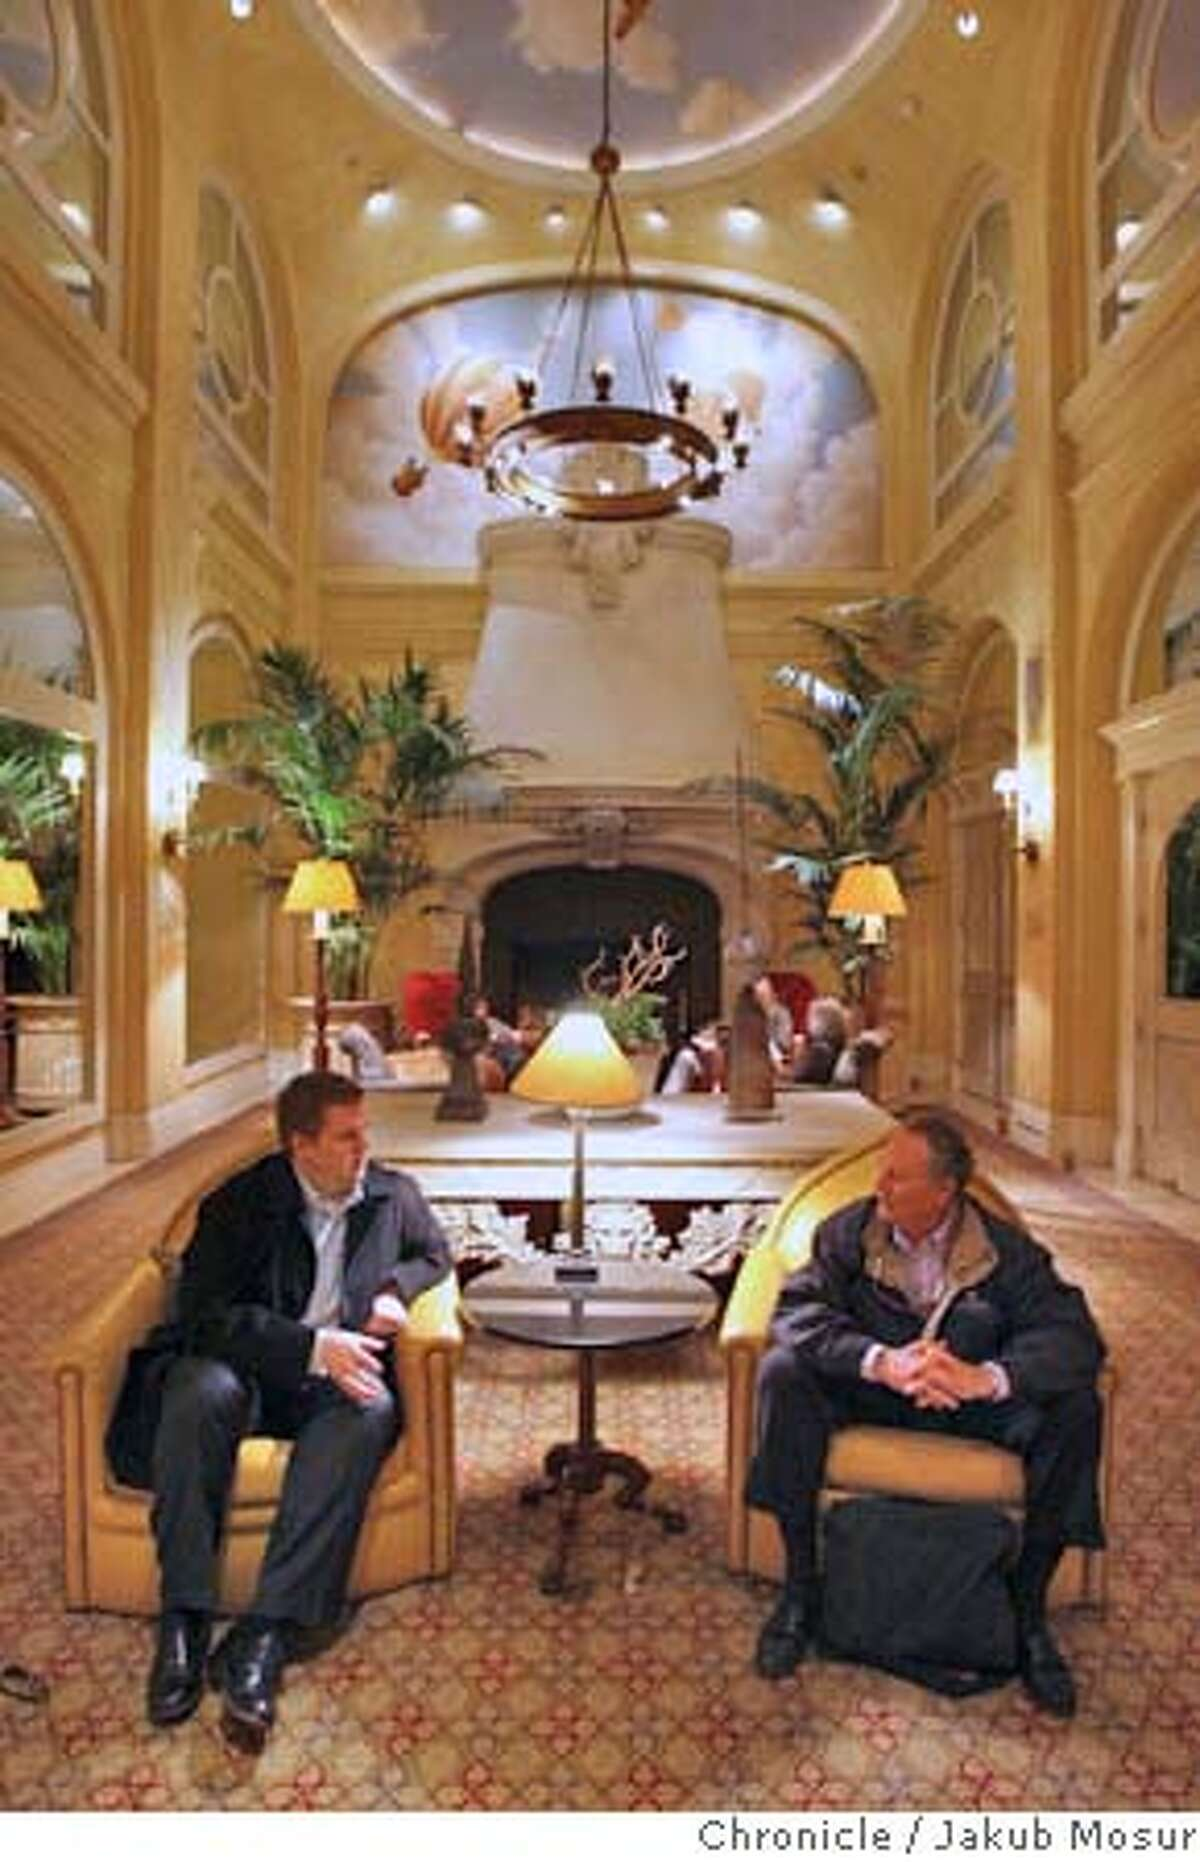 Kimpton28_03_JMM.JPG Ian Itschner, of Portland, Oregon, and Larry Hartman, of Brentwood, talk in the lobby of the Hotel Monaco, owned by the Kimpton Group. The San Francisco based Kimpton Group, which has 40 hotels around the country now, plans to double its holdings to 80 hotels in the next 5 years, financed by deep-pockets private investors and lifted by a recovering hotel and travel market. Event on 3/24/06 in San Francisco. JAKUB MOSUR / The Chronicle MANDATORY CREDIT FOR PHOTOG AND SF CHRONICLE/ -MAGS OUT